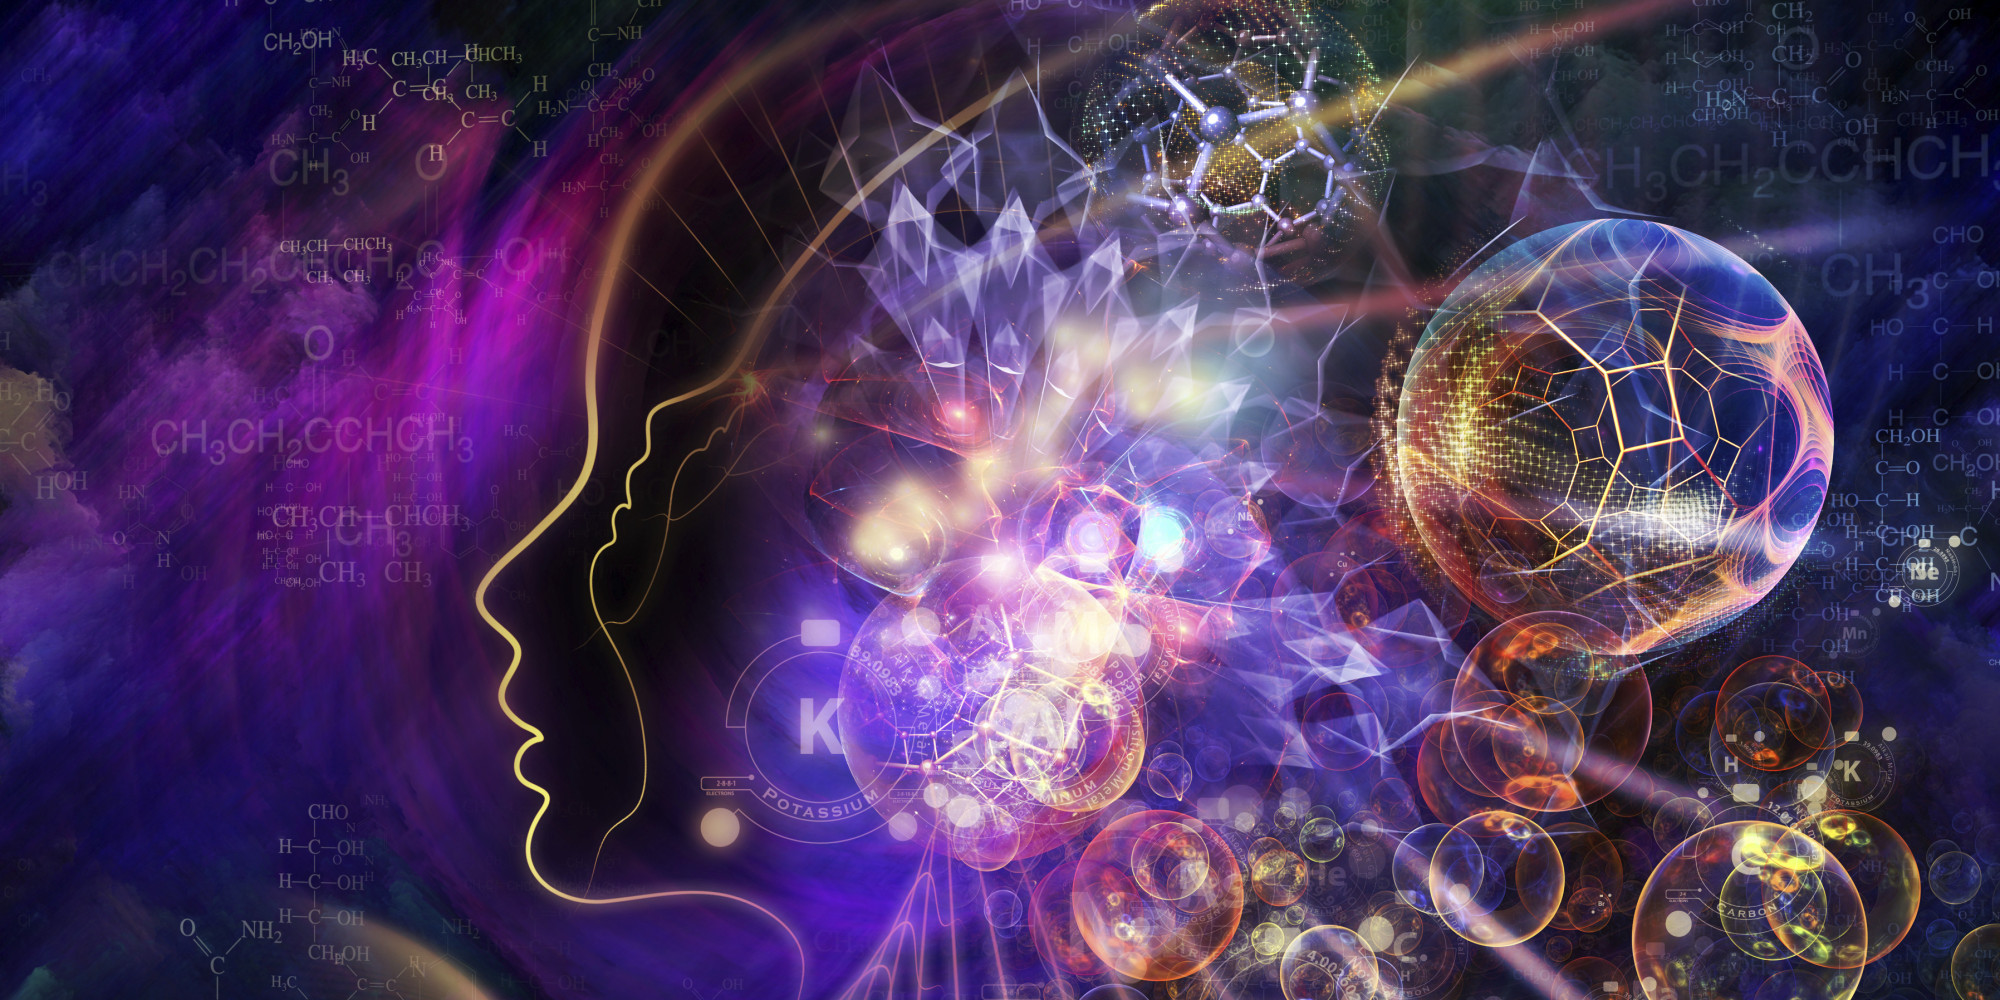 the power of psychedelics Psychedelics (serotonergic hallucinogens) are powerful psychoactive substances that alter perception and mood and affect numerous cognitive processes they are generally considered physiologically safe and do not lead to dependence or addiction.